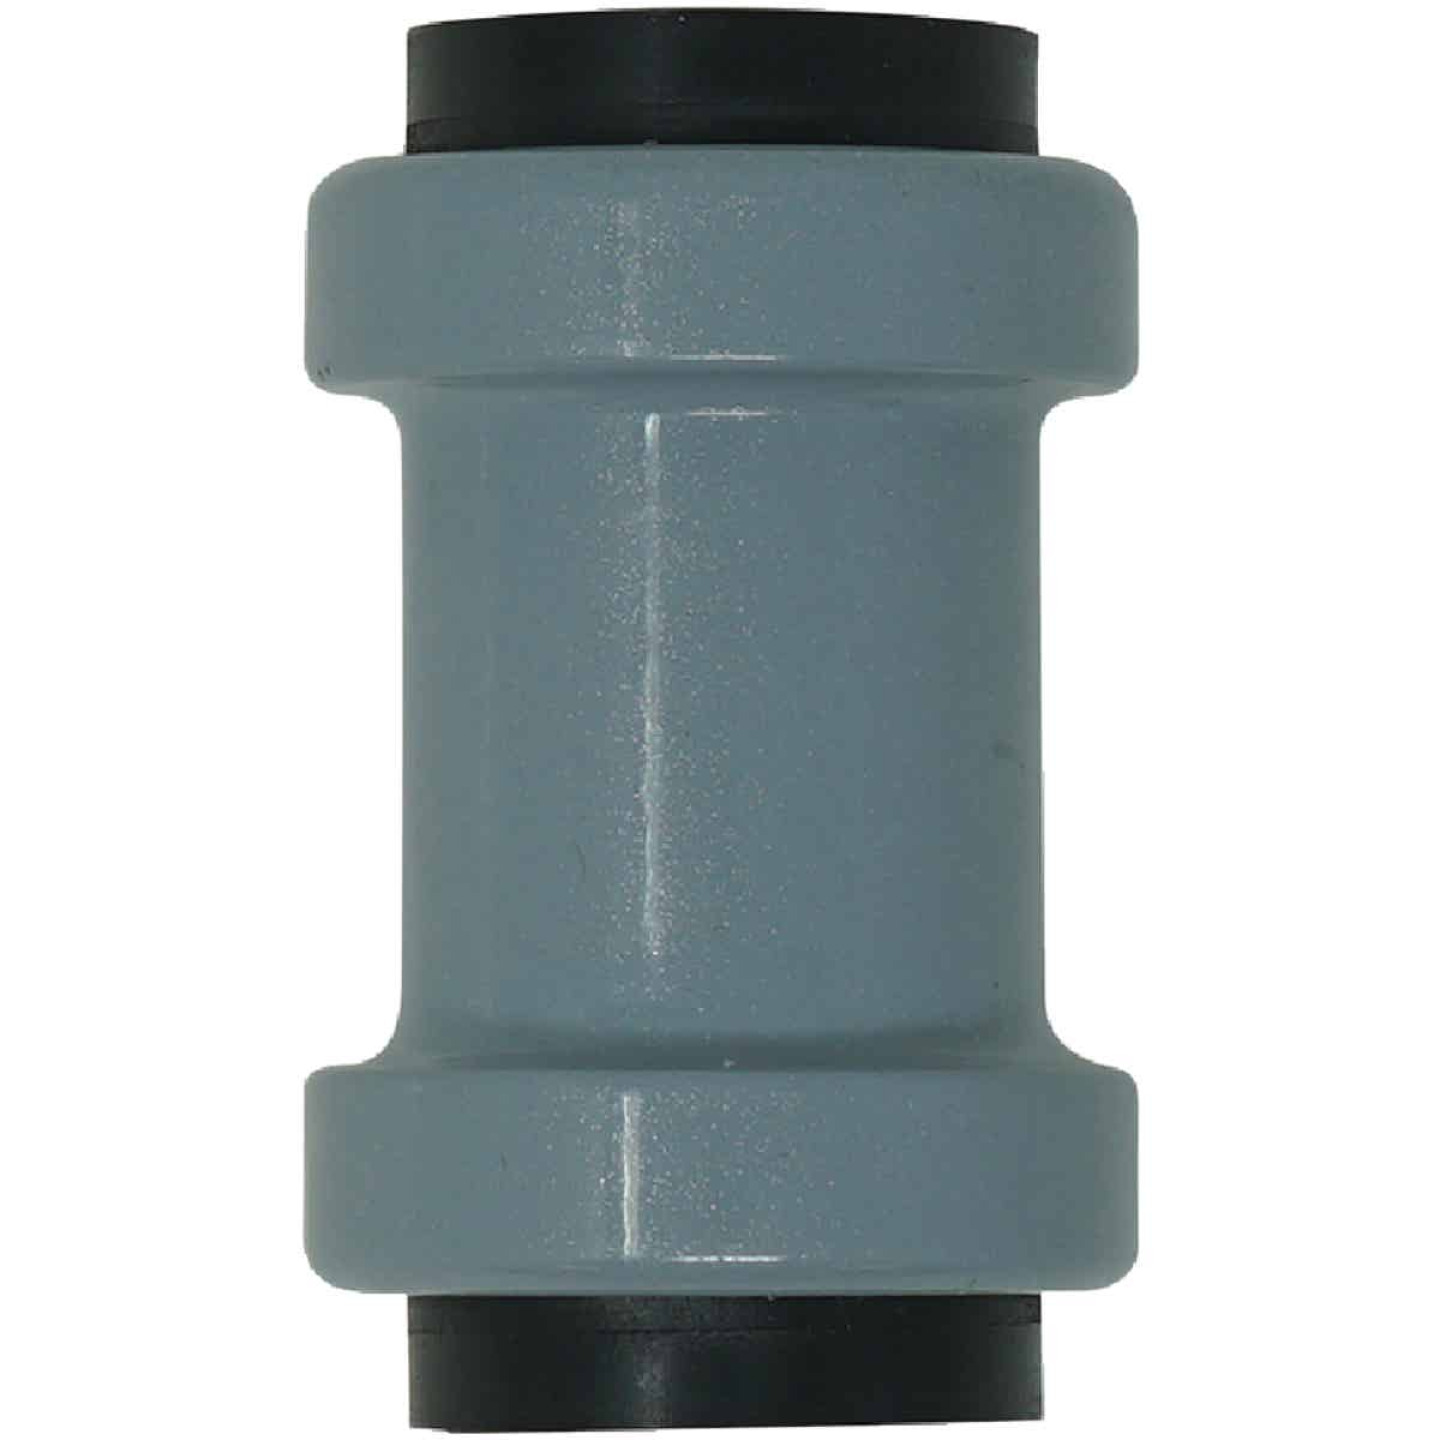 Southwire SimPush 3/4 In. EMT Push-To-Install Conduit Coupling Image 1